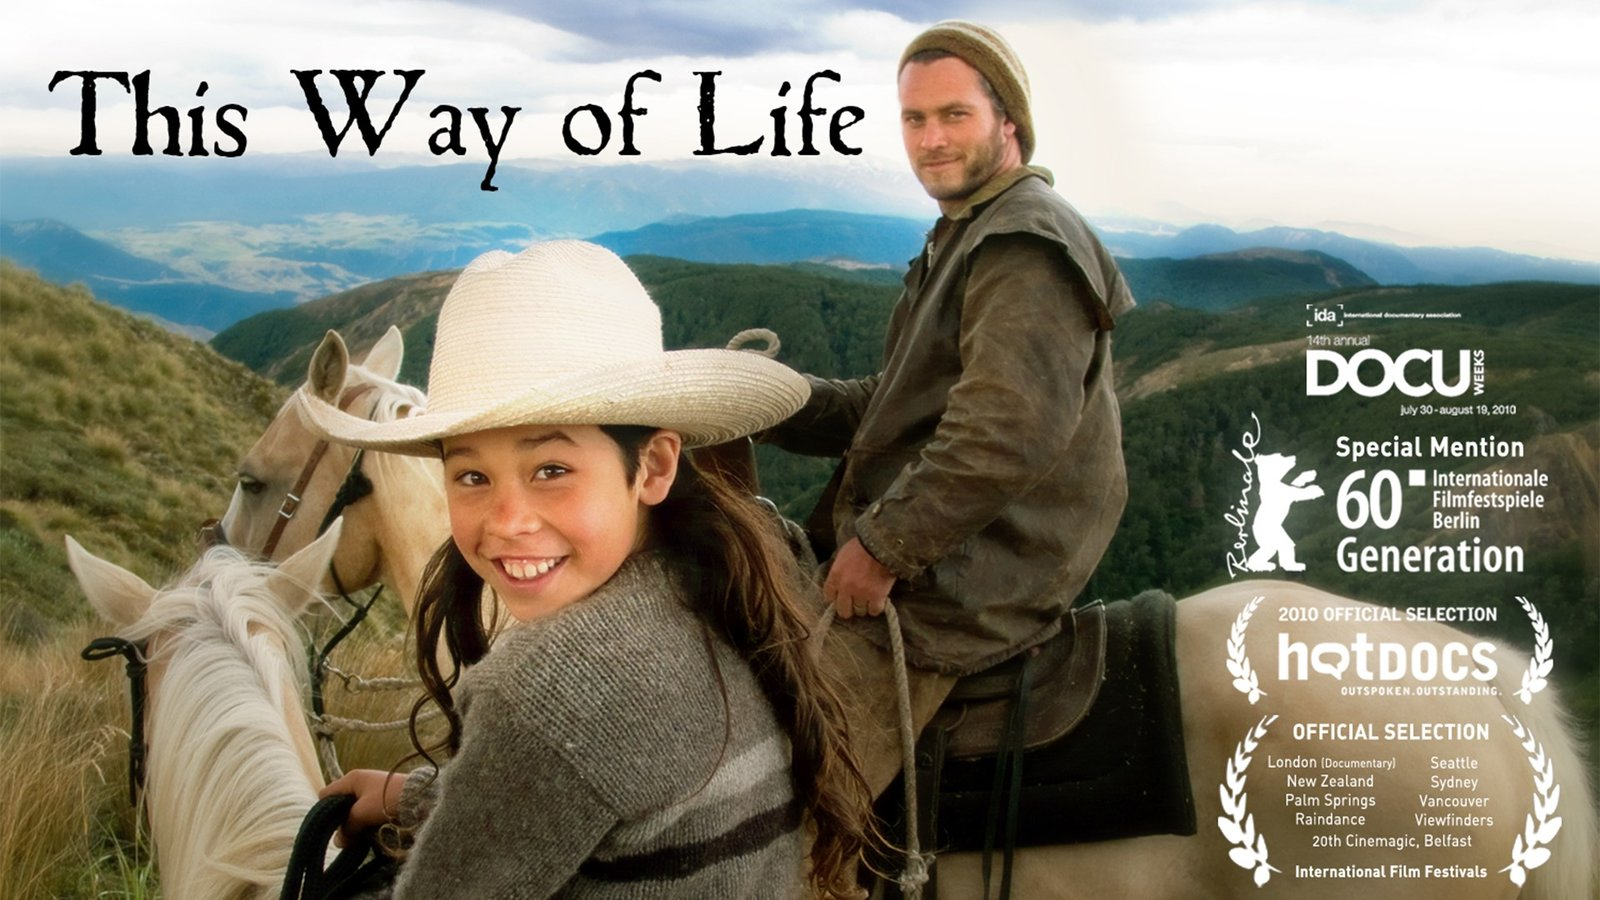 This Way of Life - The Story of a Family in New Zealand